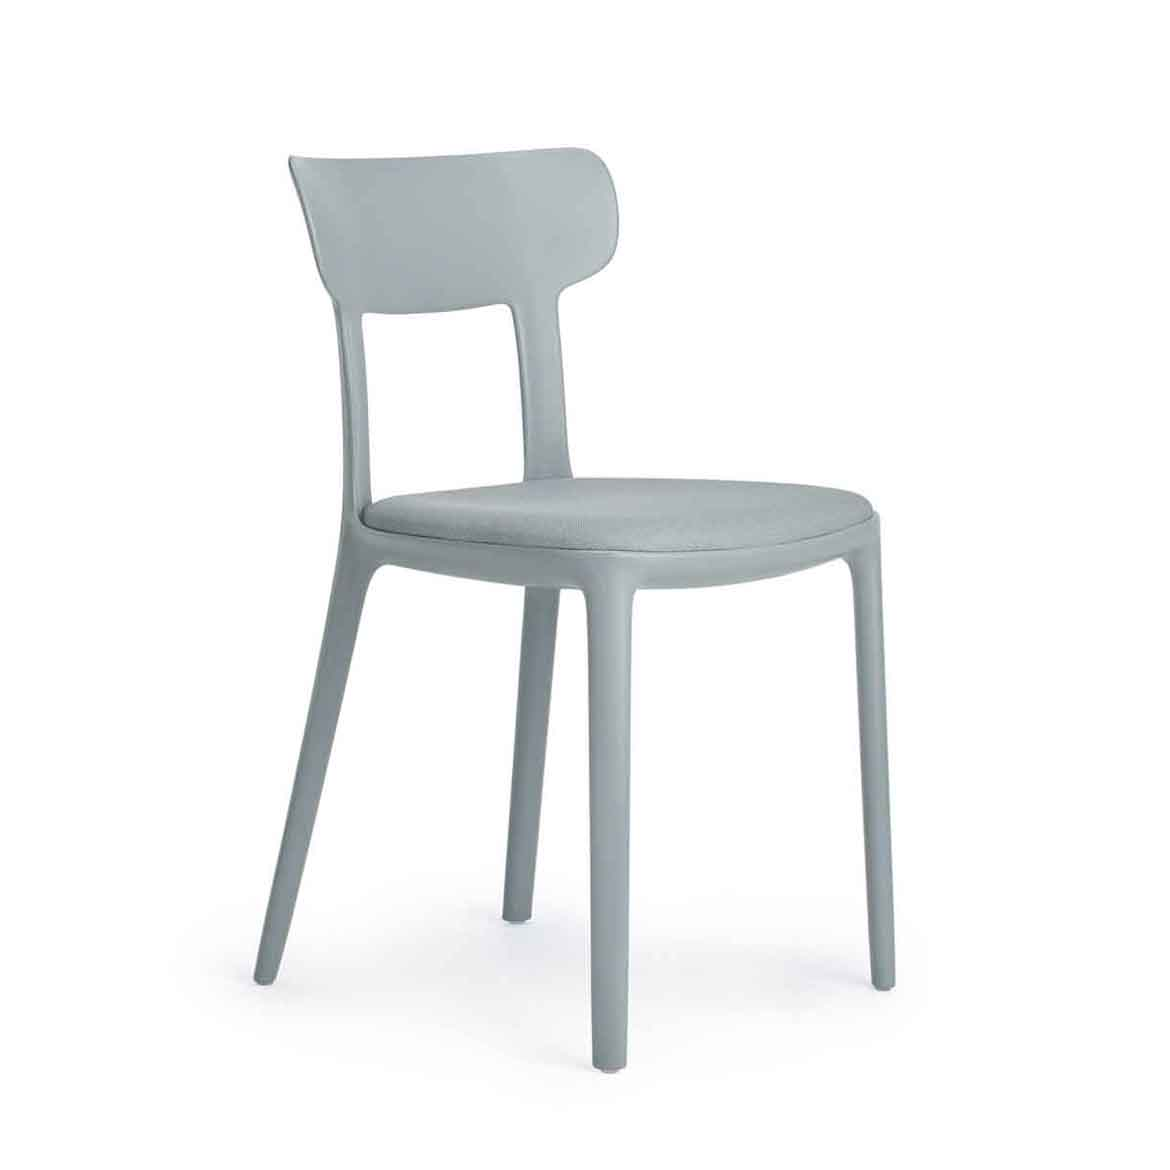 One-piece chair moulded in polypropylene, equipped with upholstered seat. Avaliable in 7 different colors.